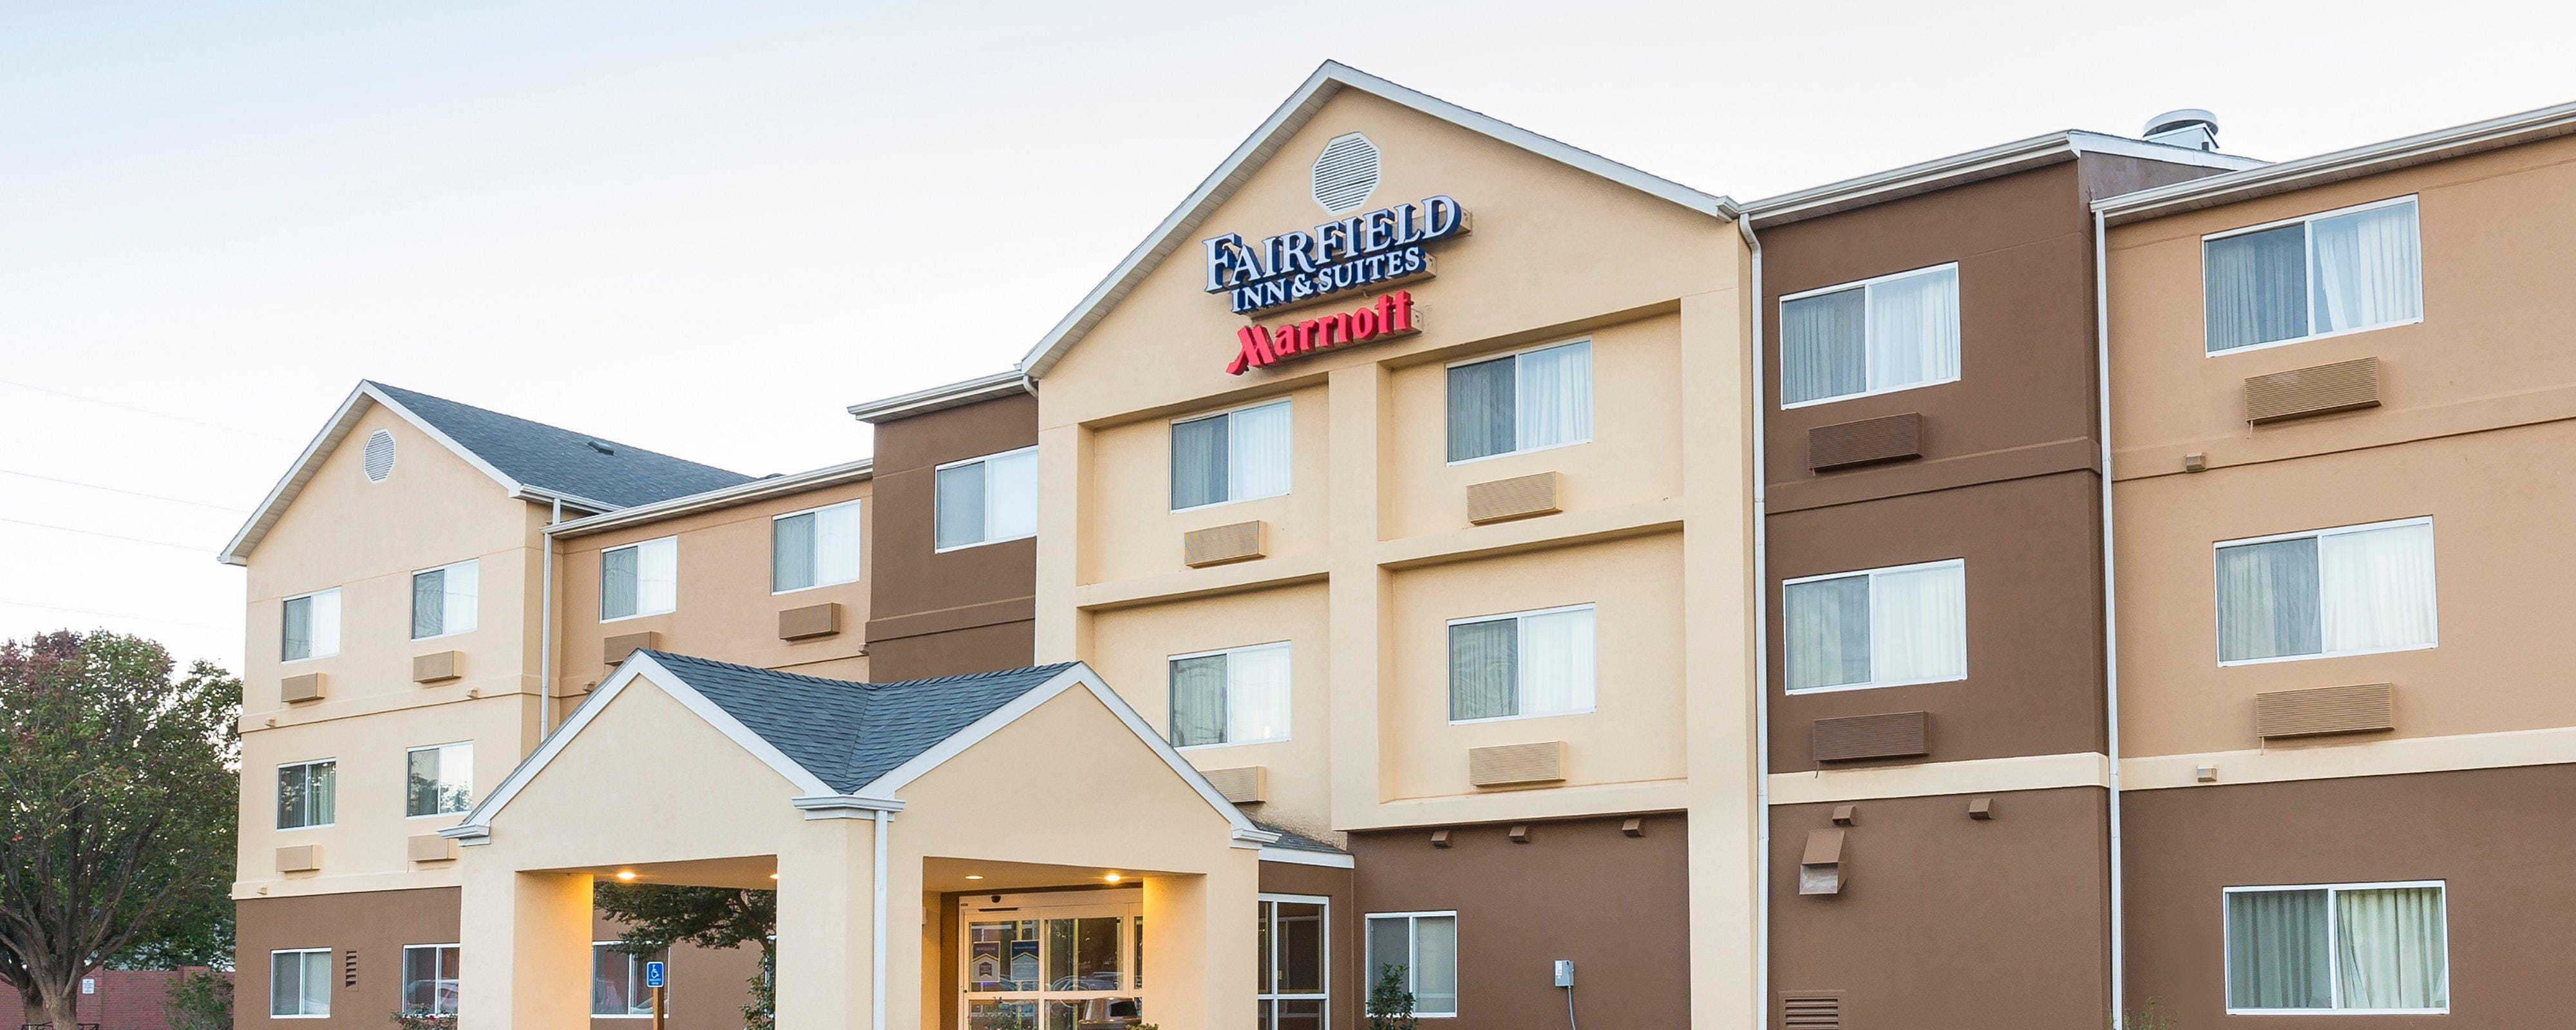 Fairfield Inn & Suites Hotel in Lubbock